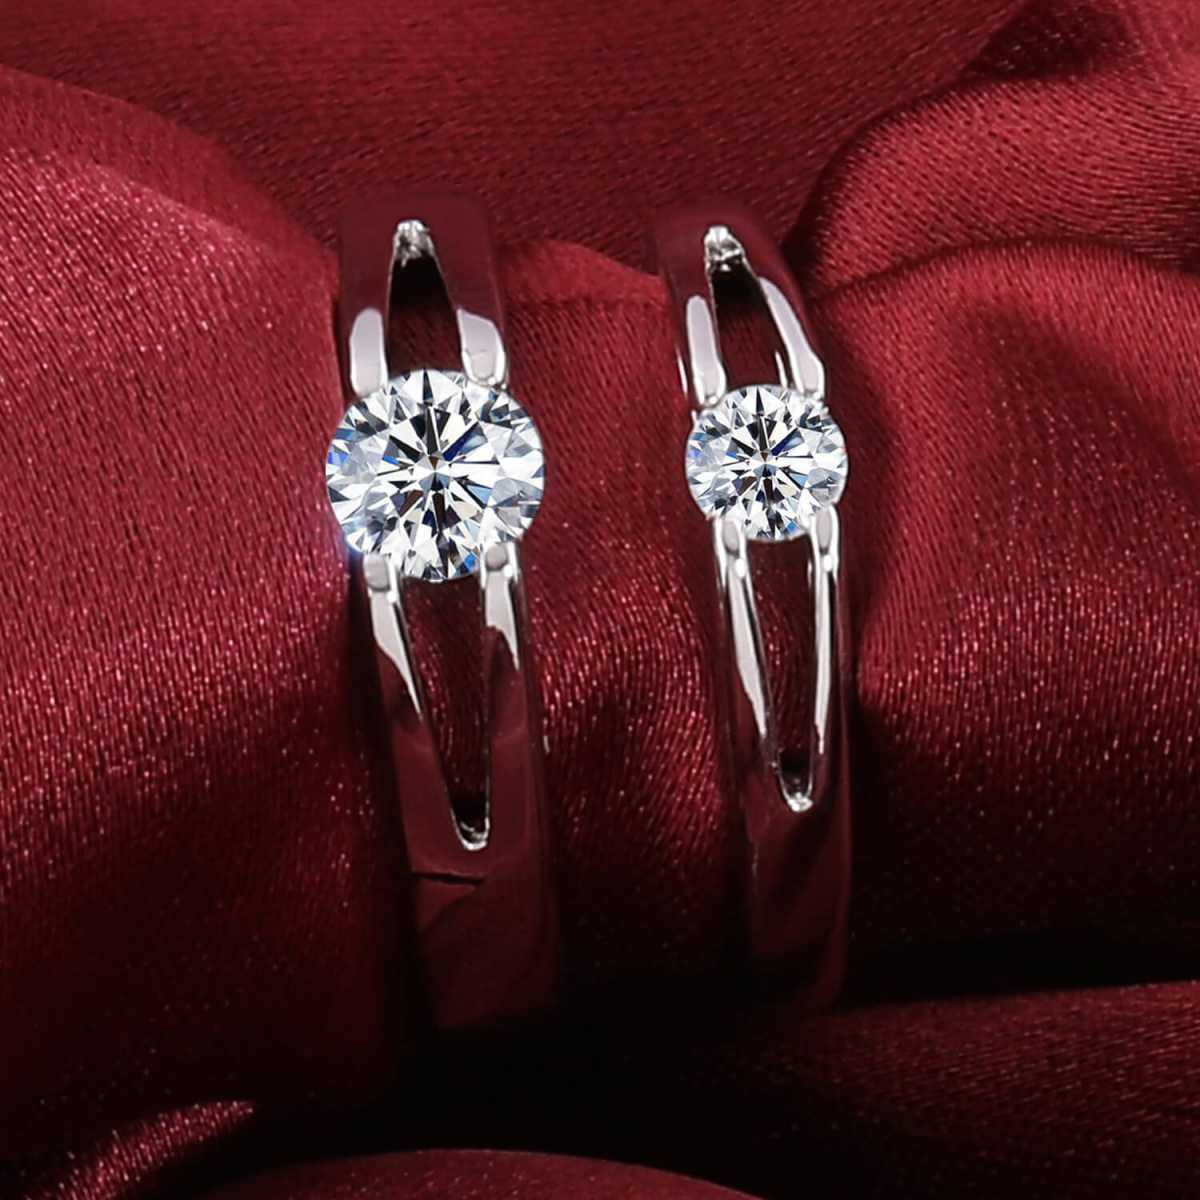 Silver Shine Silver Plated Solitaire Adjustable Couple ring  for Men and Women,Couple ring for Girls and Boys-2 pieces